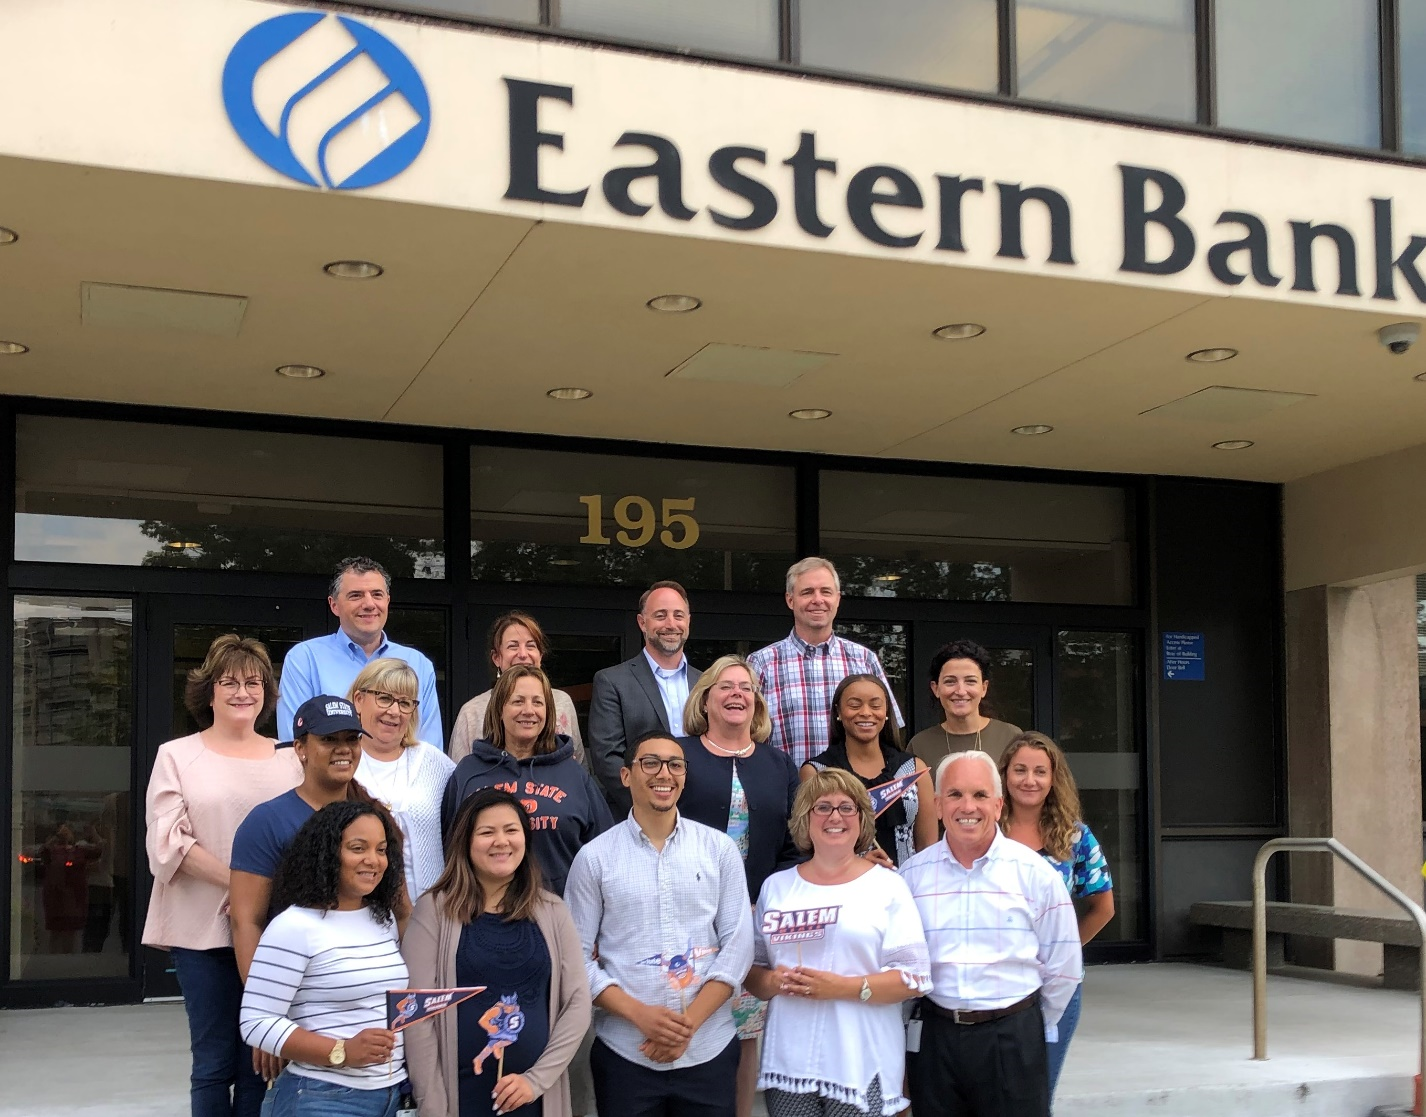 : A proud group of Eastern Bank employees who are Salem State students and alum…